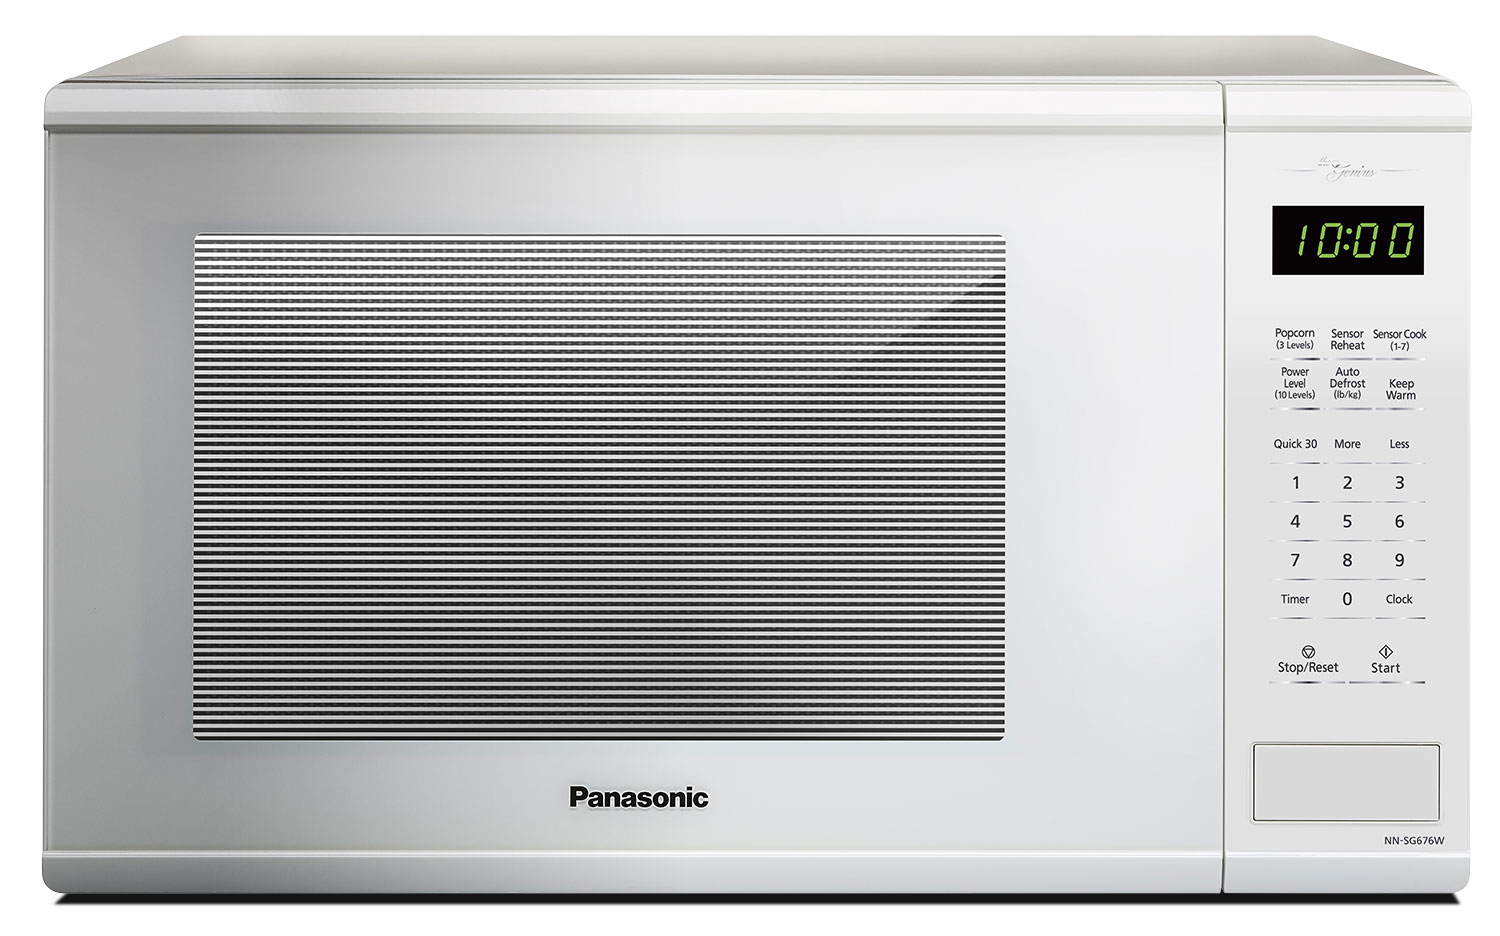 Panasonic Genius® 1.3 Cu. Ft. Countertop Microwave – NNSG676W